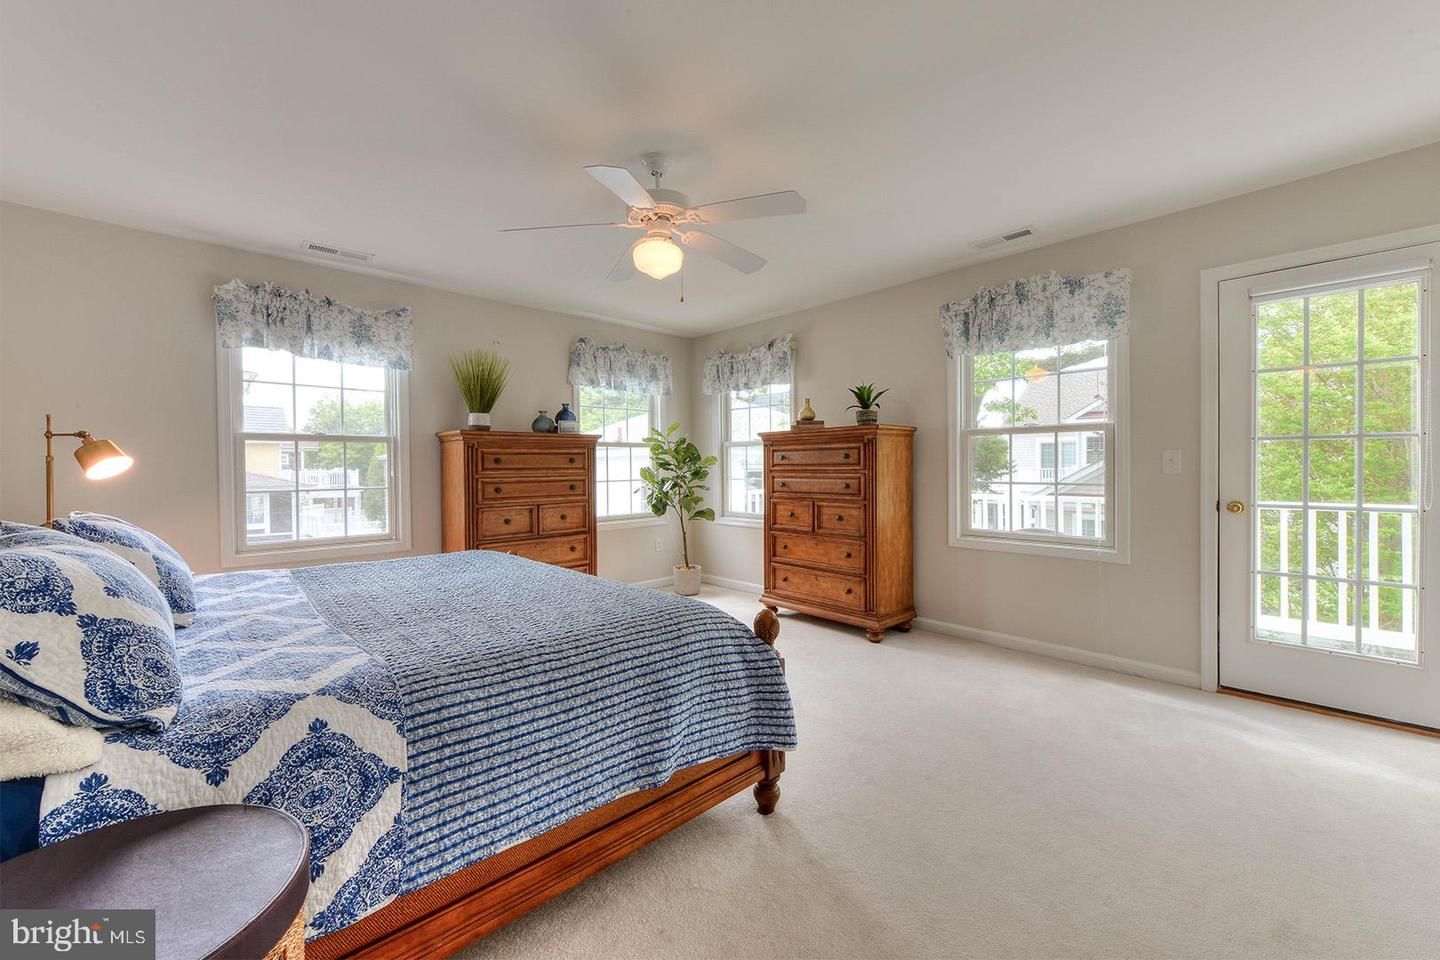 DESU139874-301711164476-2019-05-16-07-32-35 10 New Castle St | Rehoboth Beach, DE Real Estate For Sale | MLS# Desu139874  - Rehoboth Beach Real Estate - Bryce Lingo and Shaun Tull REALTORS, Rehoboth Beach, Delaware